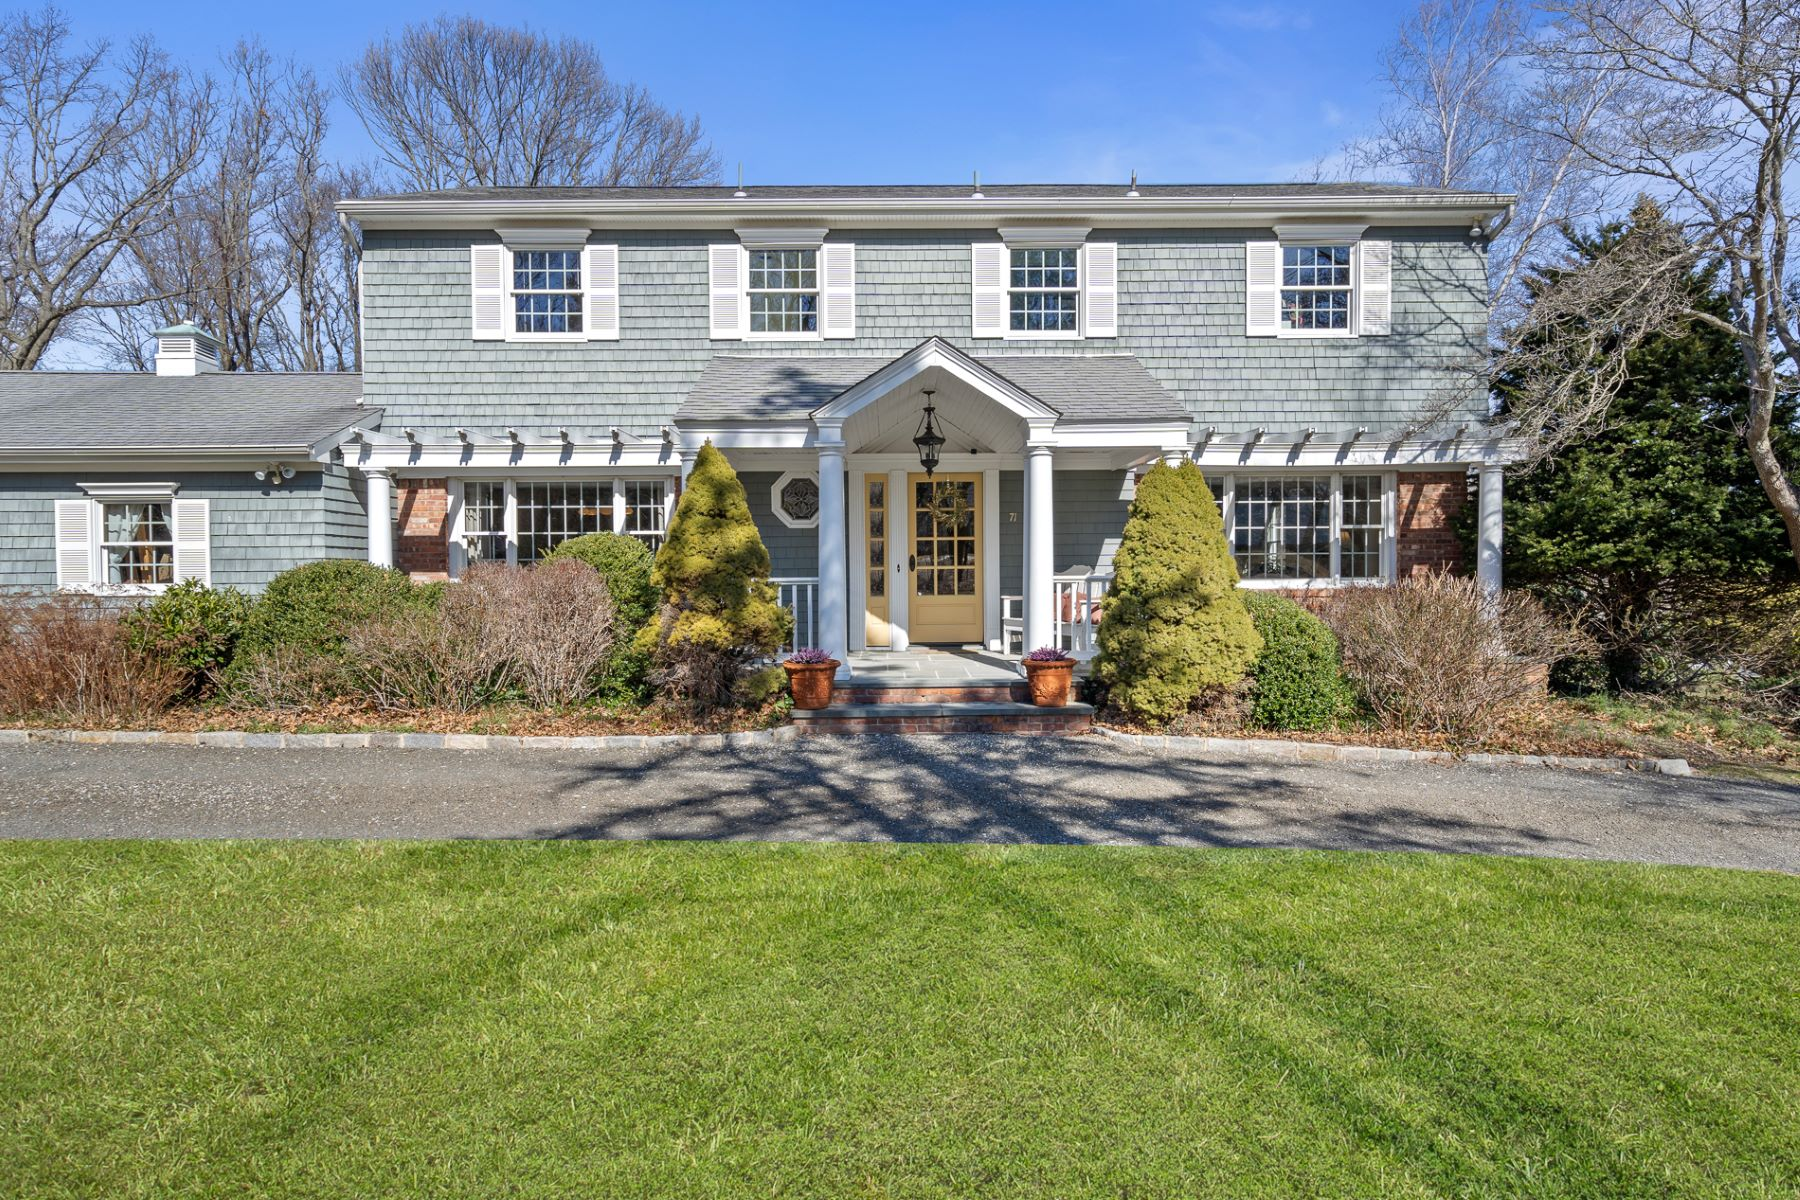 Single Family Homes for Sale at Northport 71 Nautilus Avenue Northport, New York 11768 United States